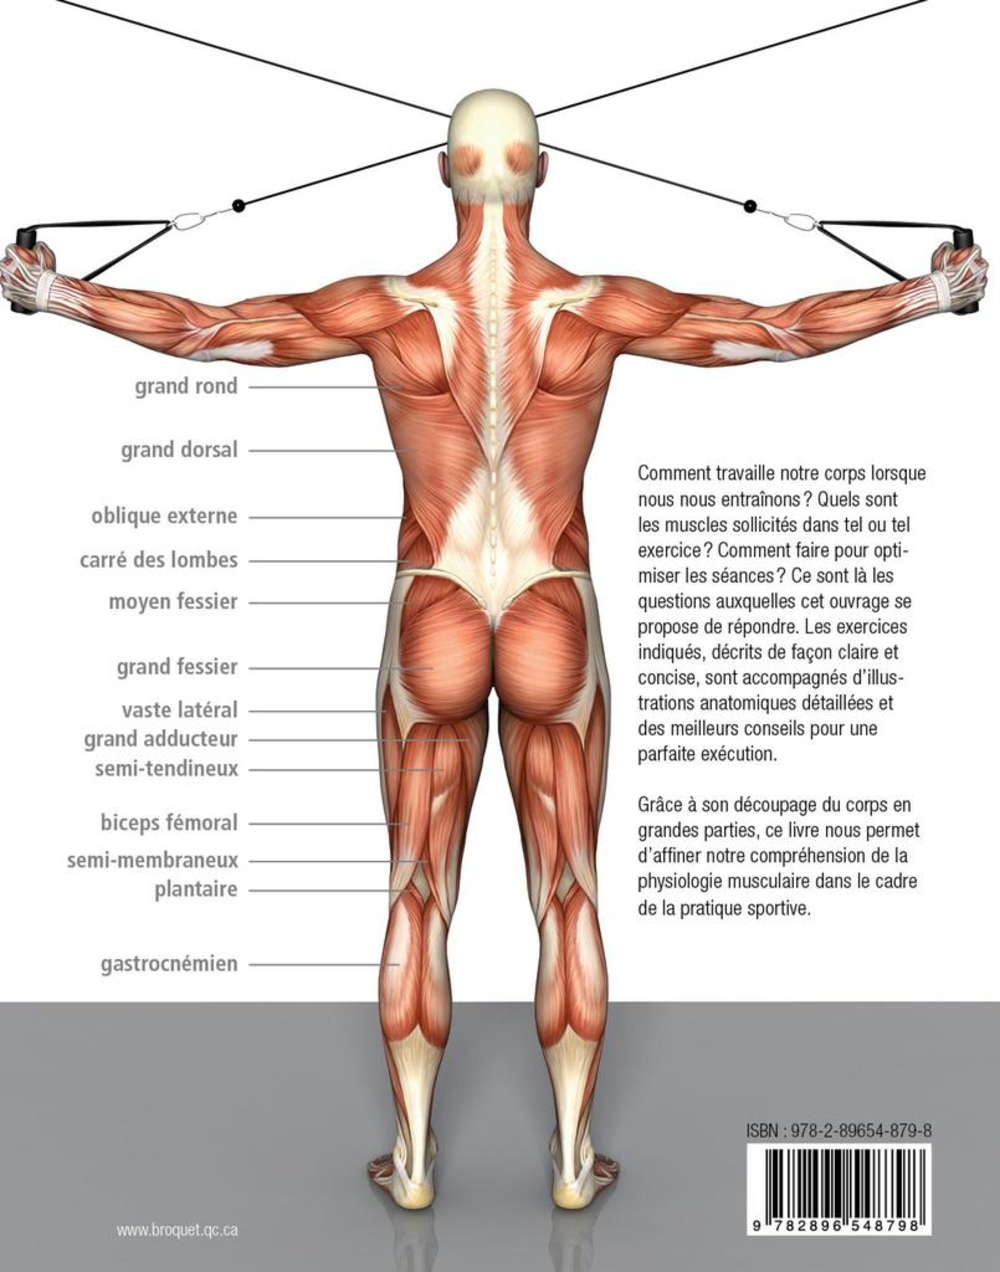 Musculation: Anatomie et mouvements - Pat Manocchia revers